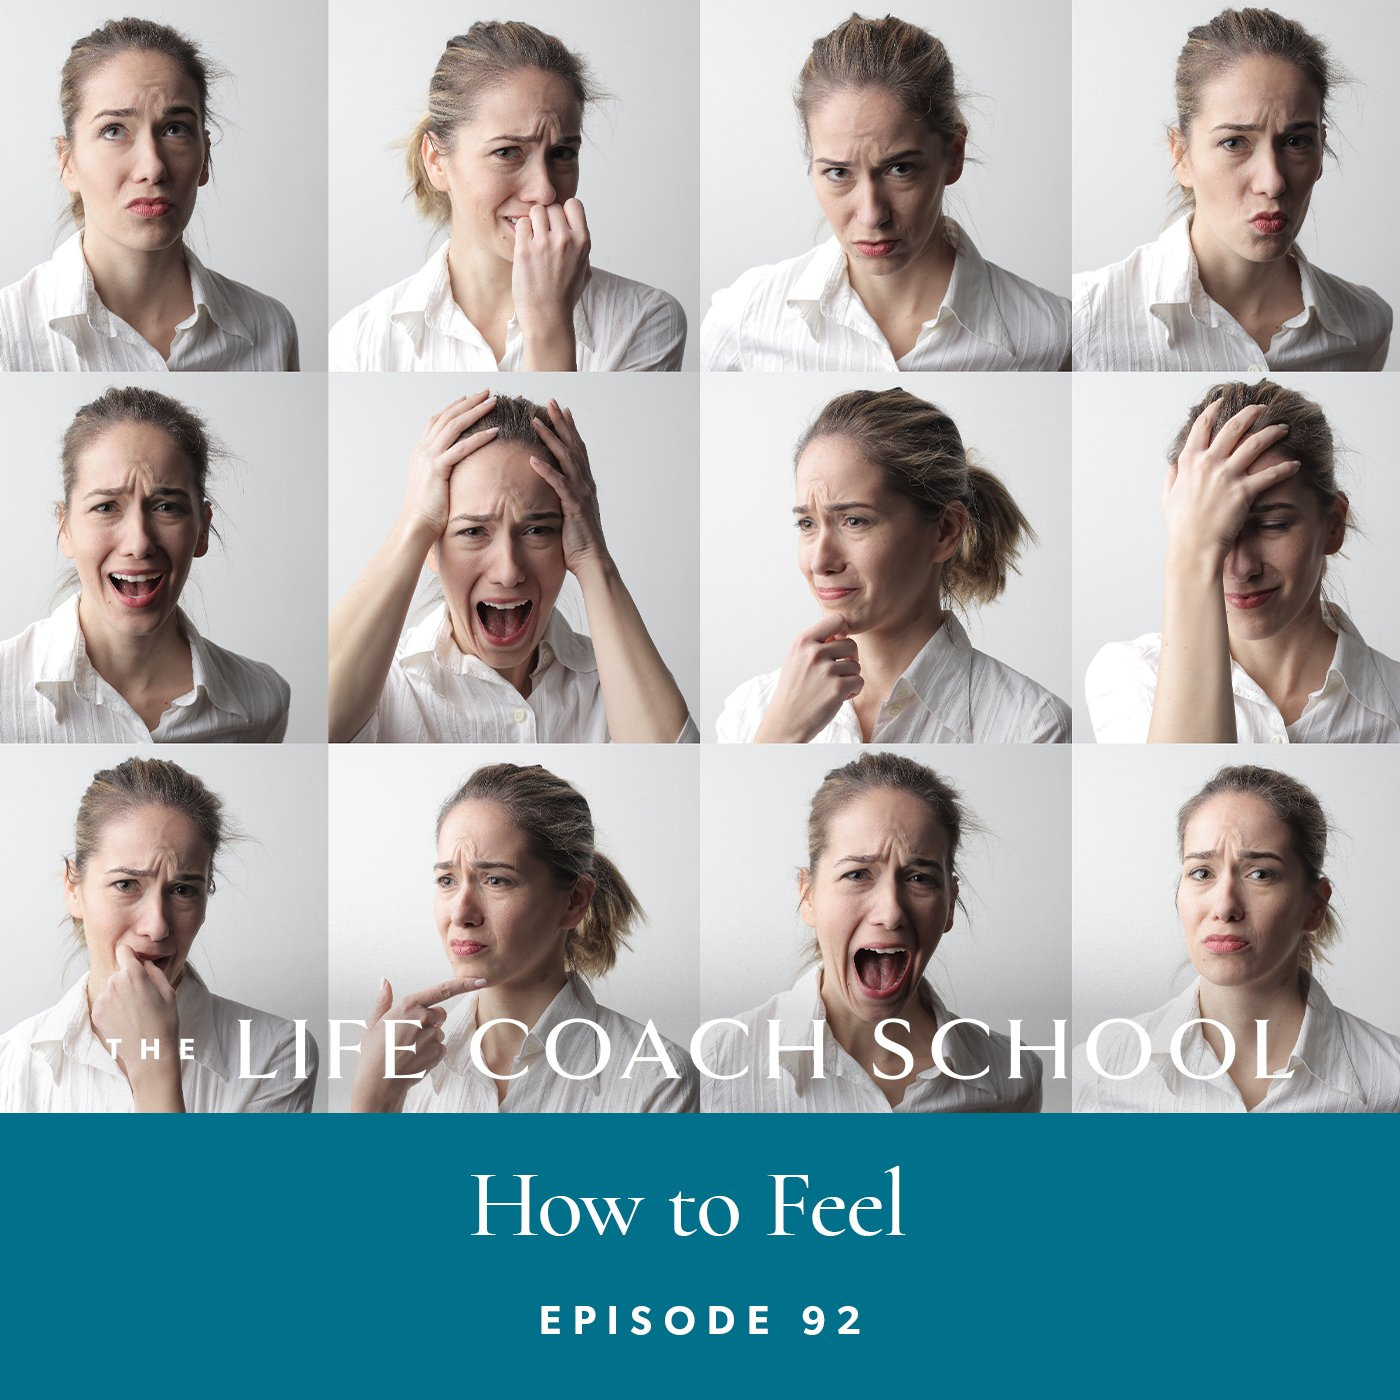 The Life Coach School Podcast with Brooke Castillo | Episode 92 | How to Feel